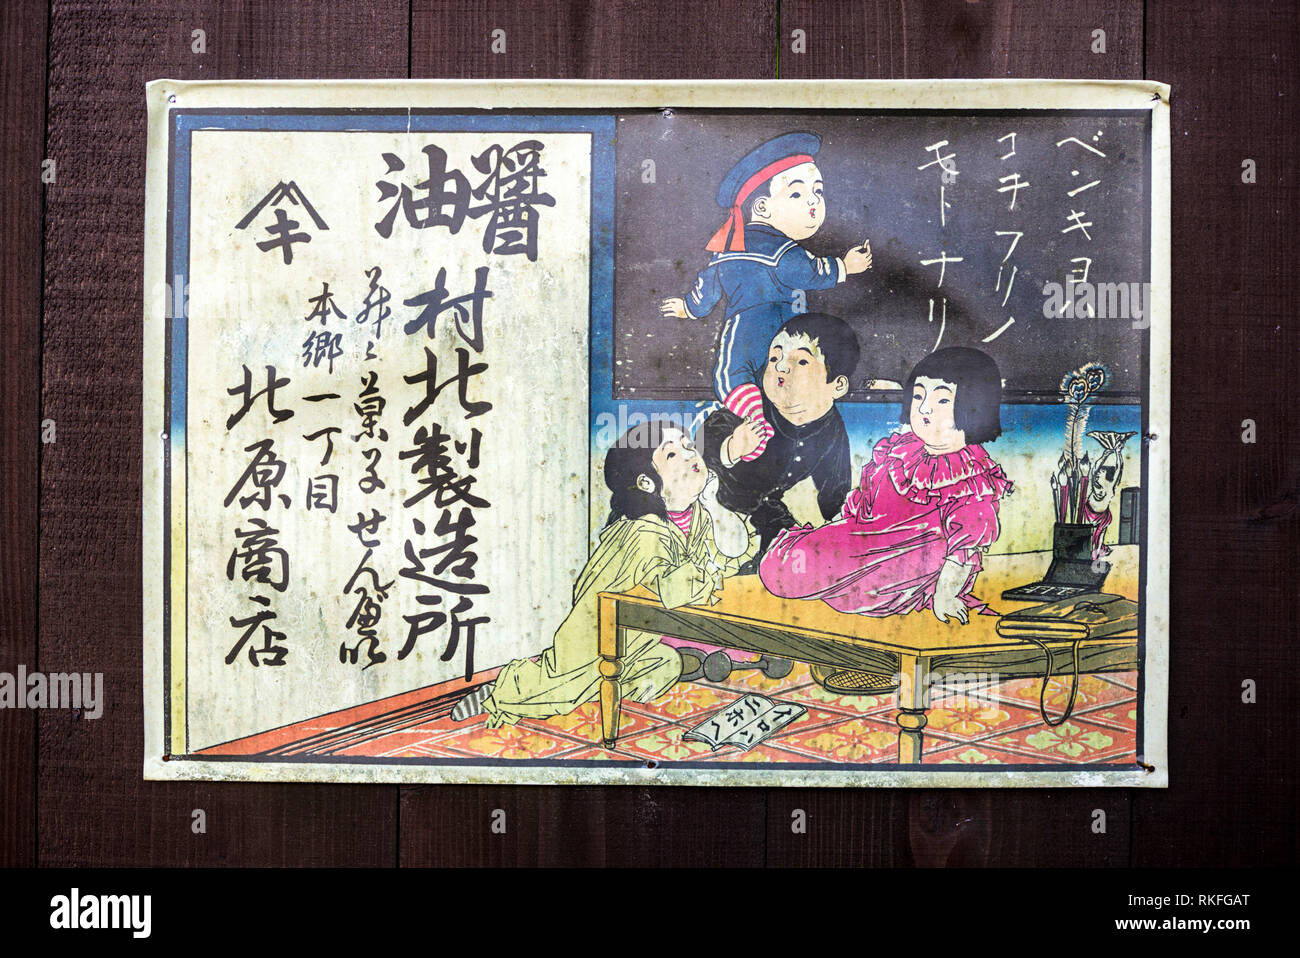 Japanese advertising poster from late 19th, early 20th century - Stock Image